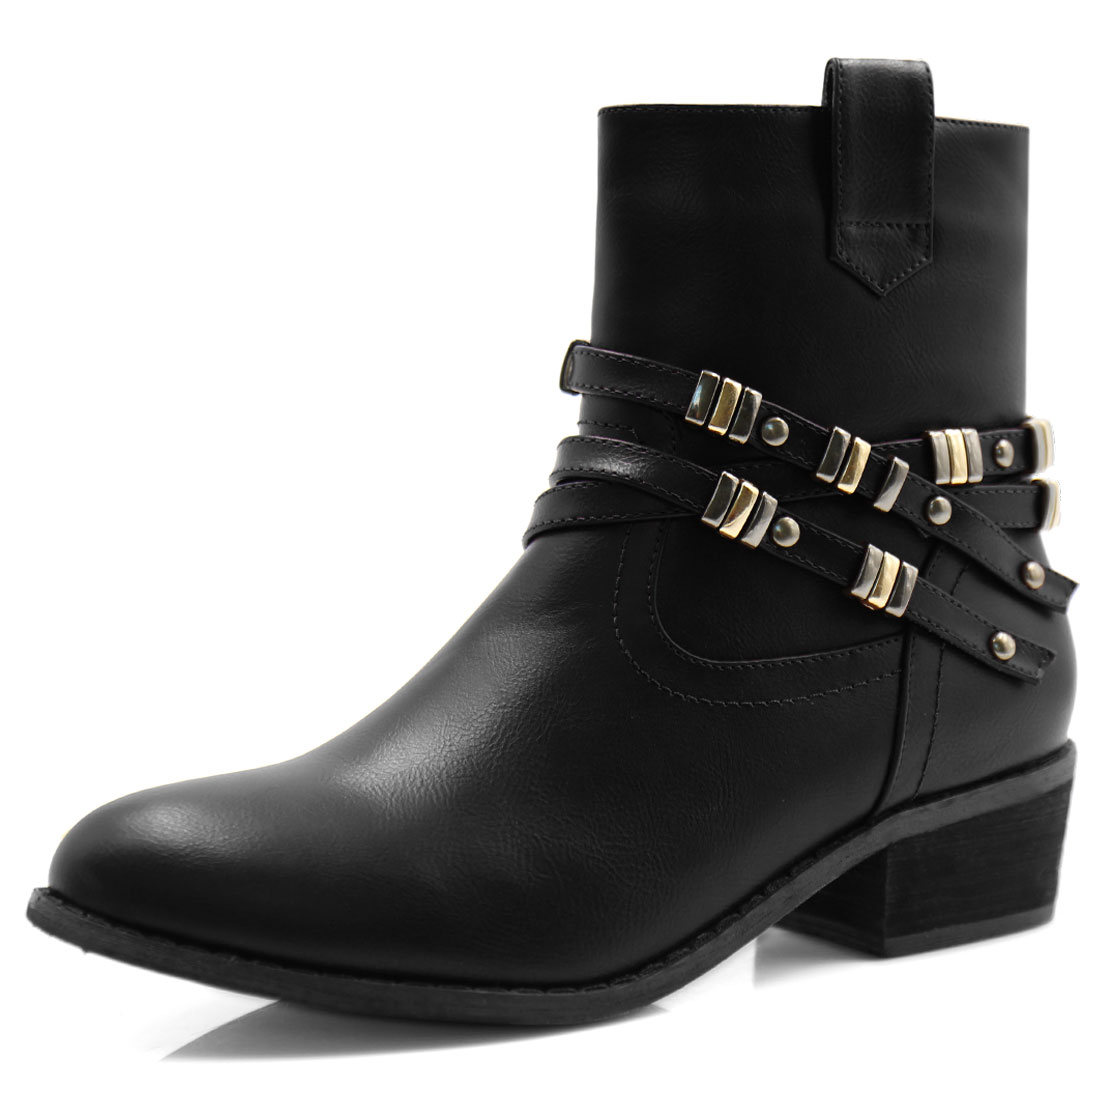 Women Block Heel Studded Straps Zipper Ankle Boots Black US 8.5